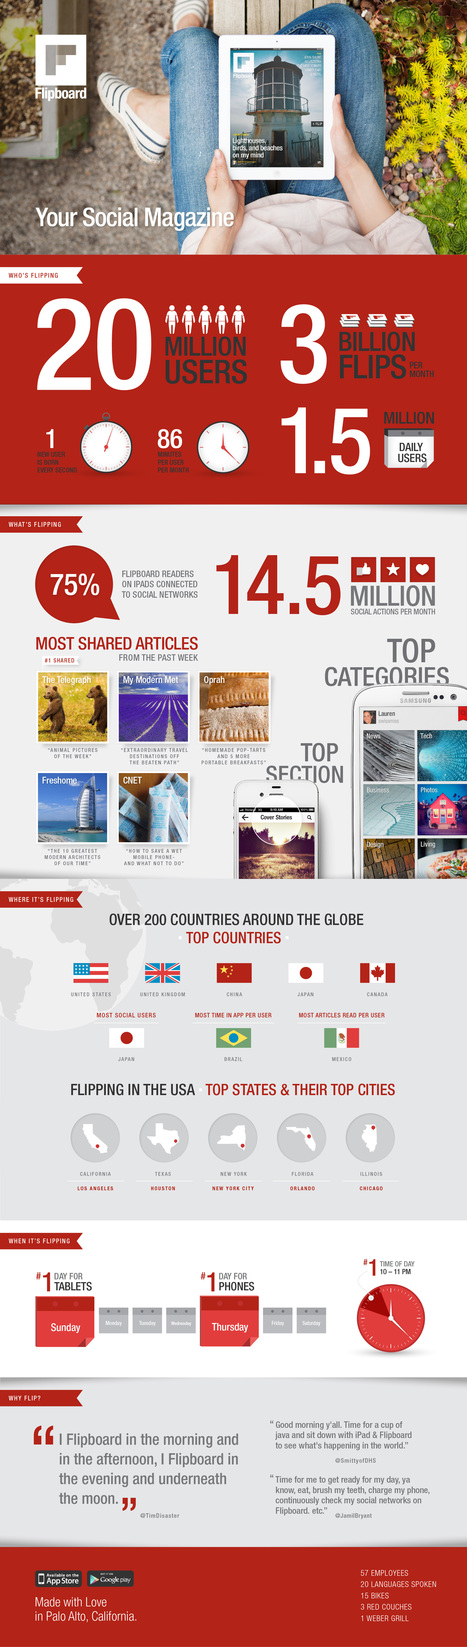 Flipboard Quadruples User Base to 20 Million in 8 Months | Visual.ly | Social Media and Web Infographics hh | Scoop.it